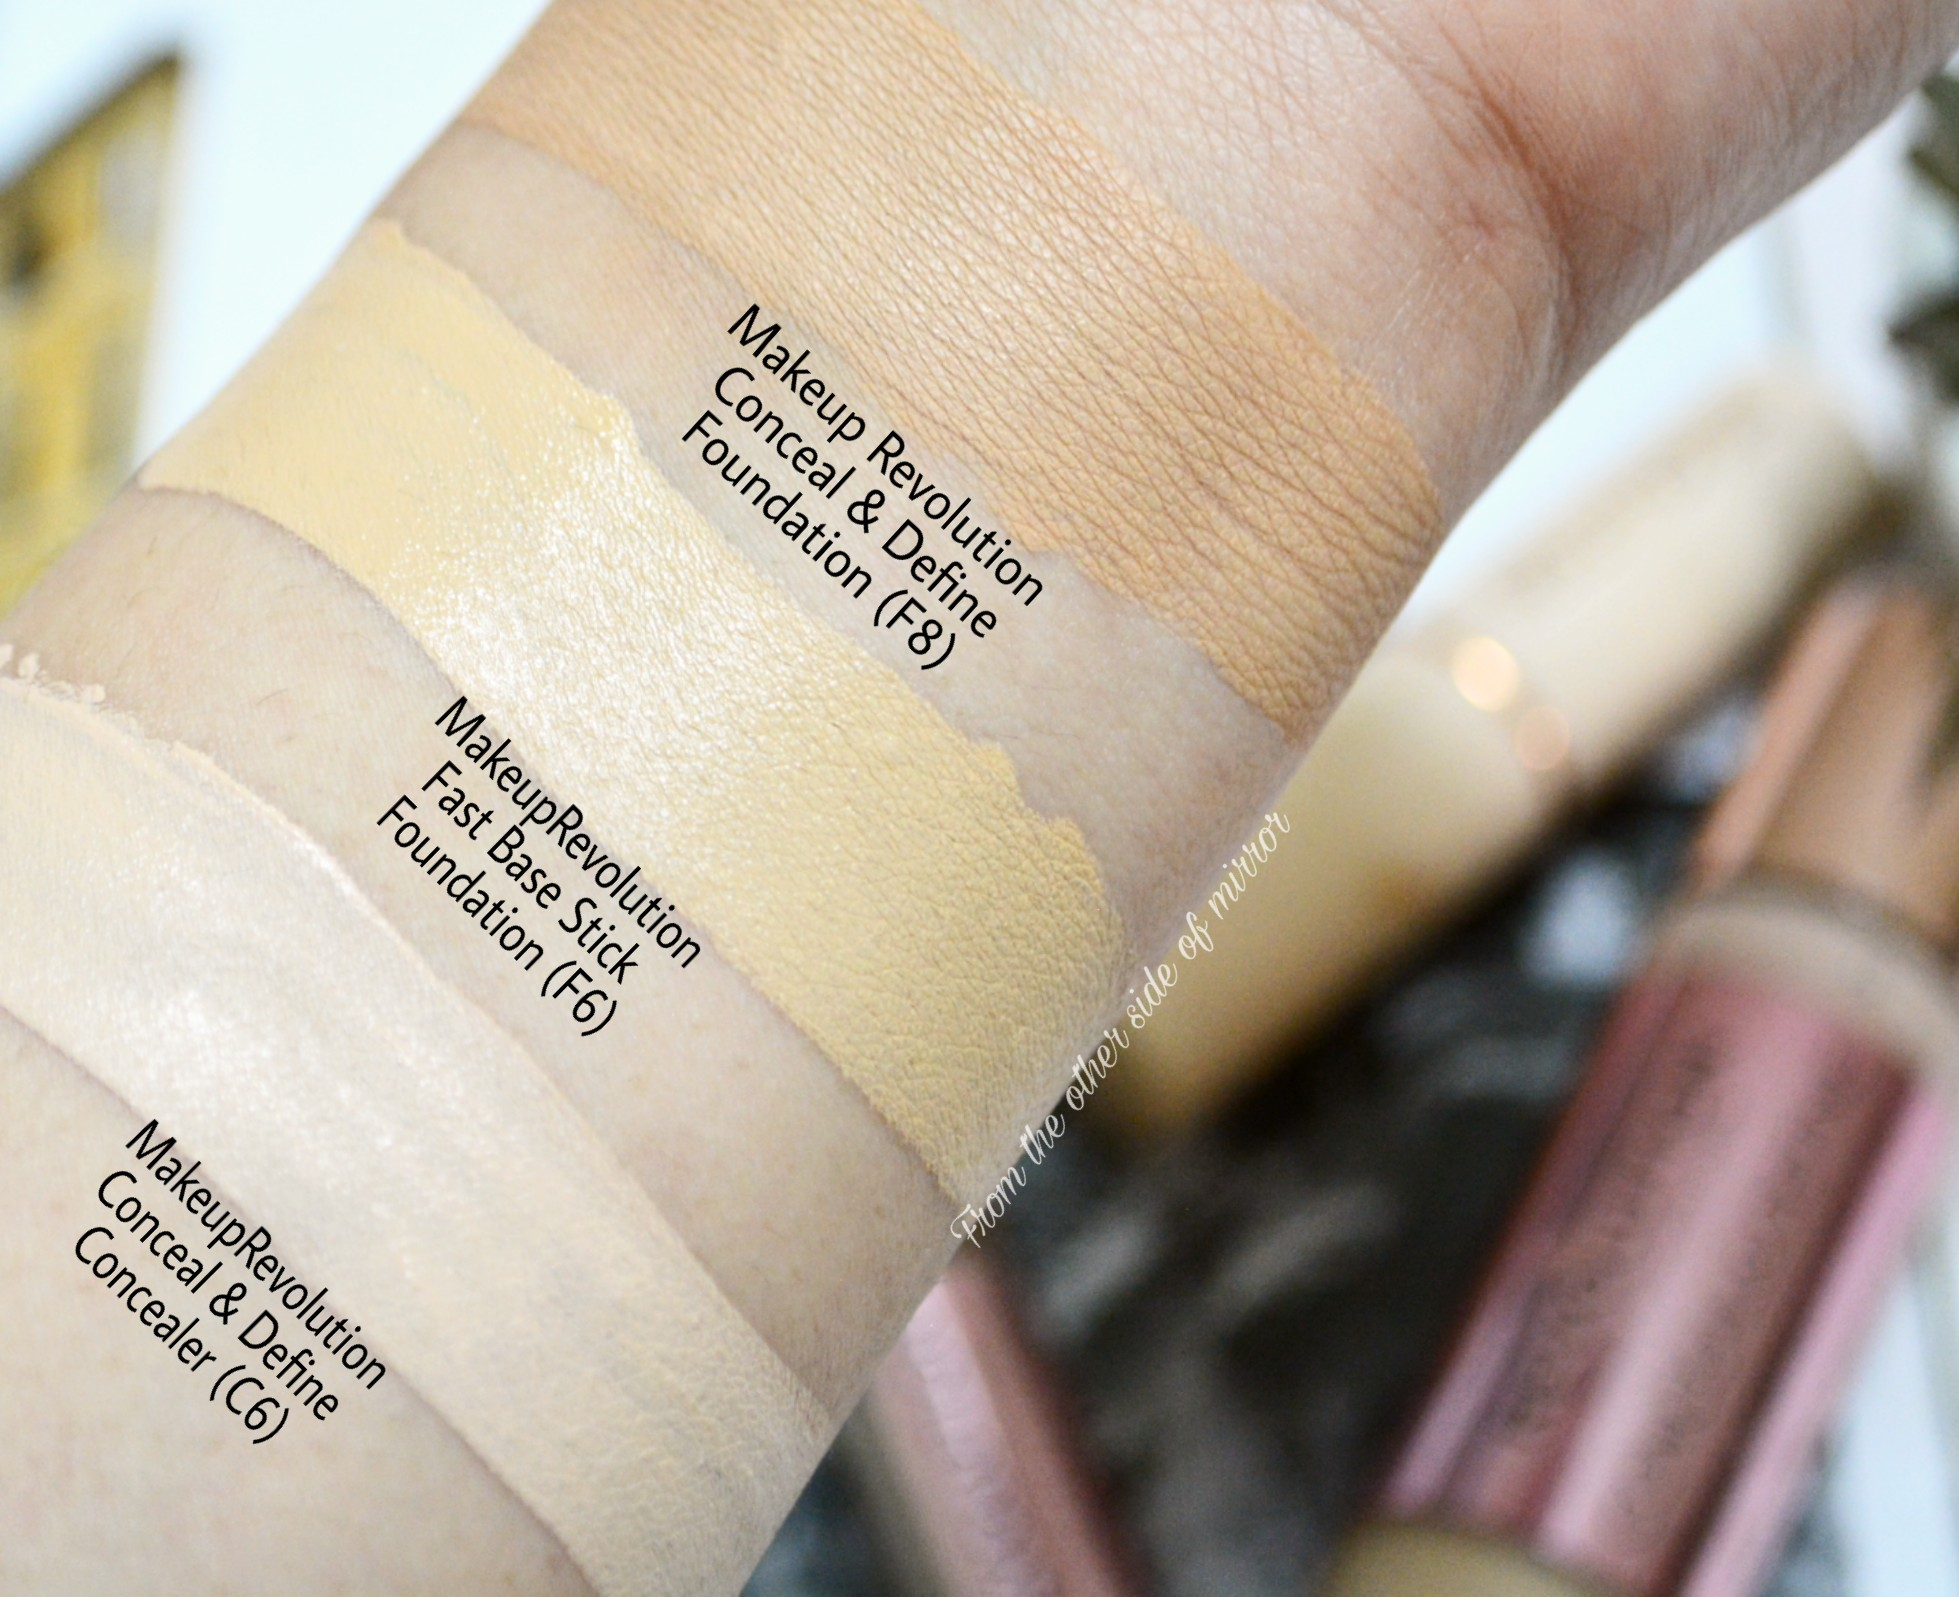 MakeupRevolution Conceal & Define Foundation (F8) compared to other MUR shades